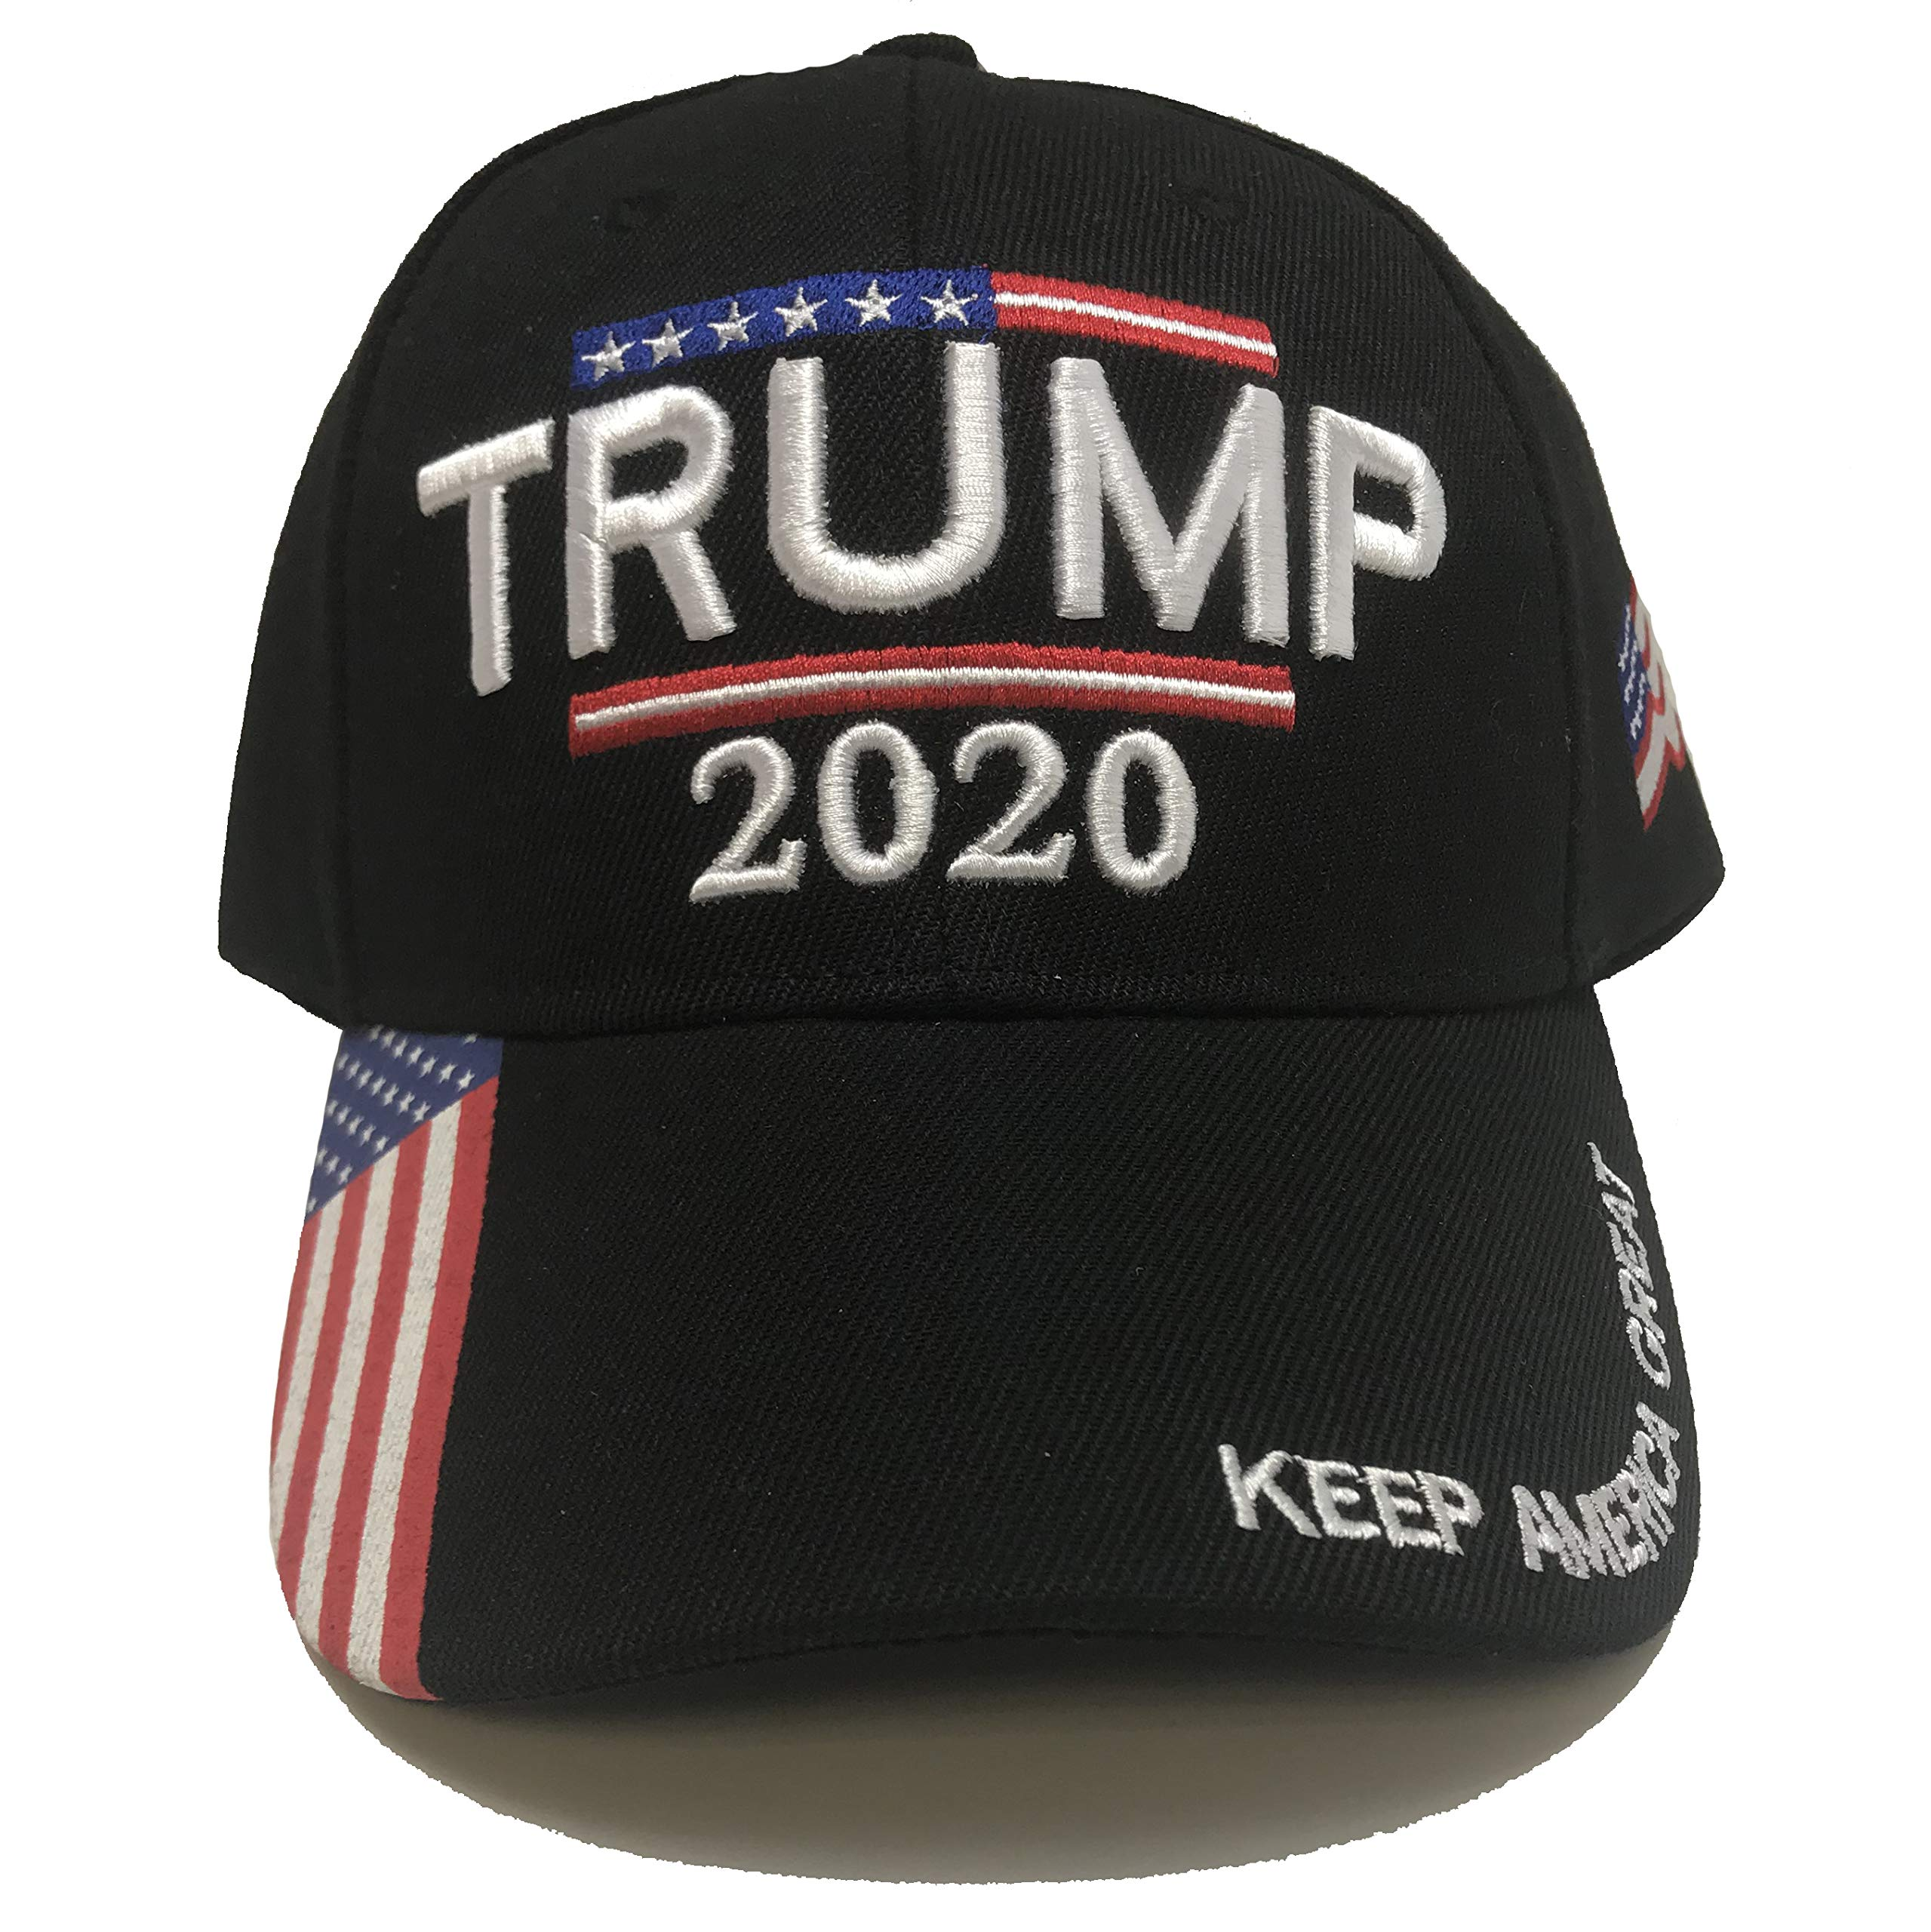 Trump 2020 Hat – Keep America Great 3D Embroidery American Flag Donald Trump MAGA Baseball Cap